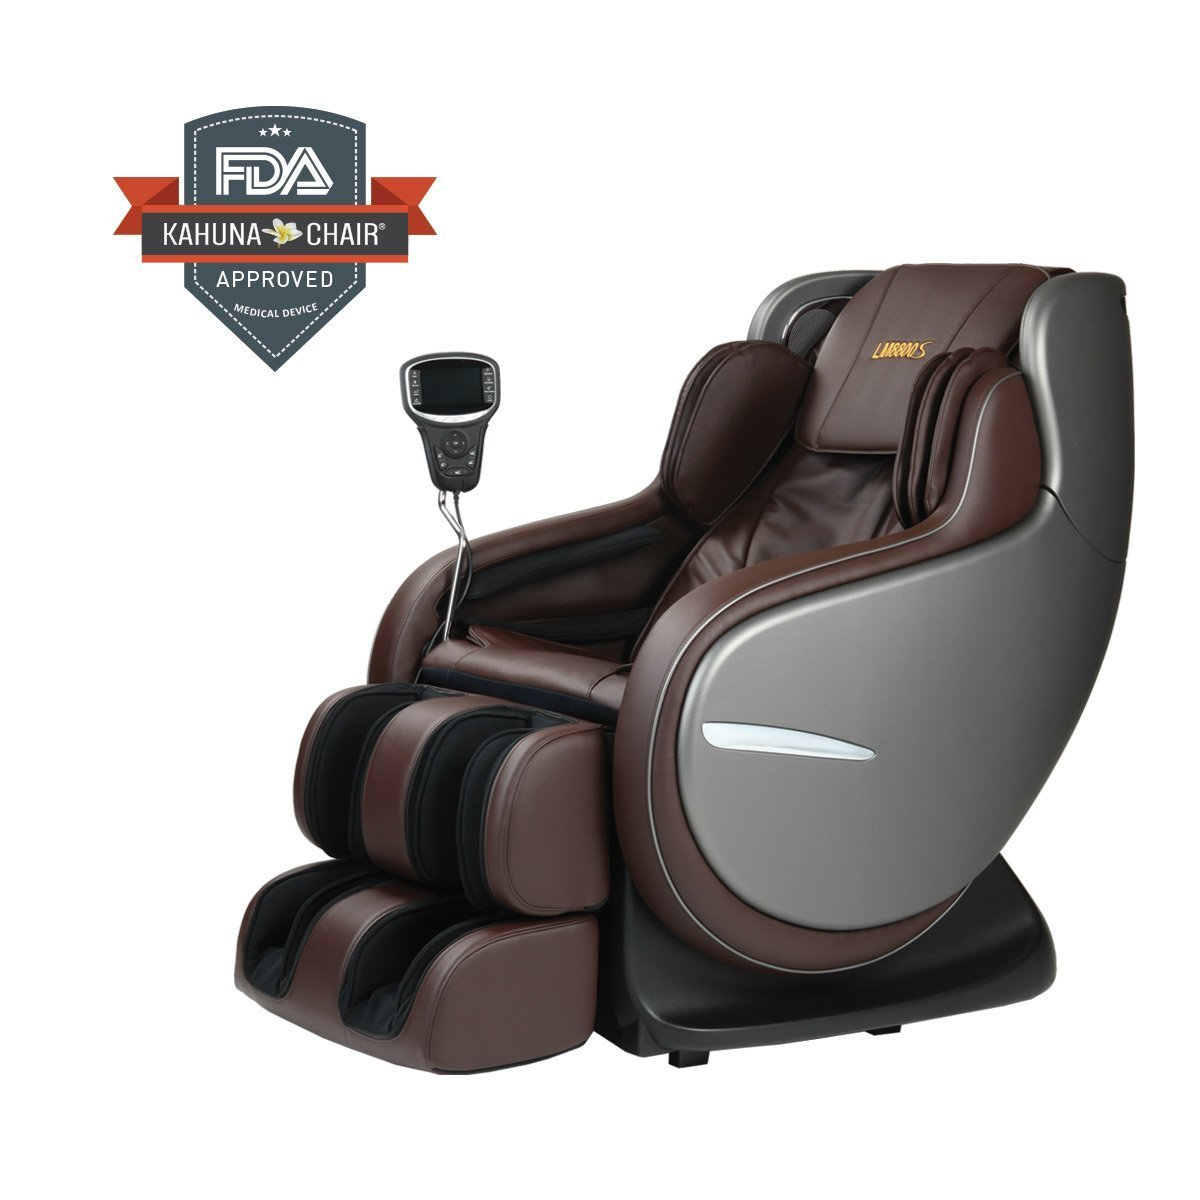 best ultimate massage experience 3d kahuna massage chair lm8800s brown - Osaki Os4000